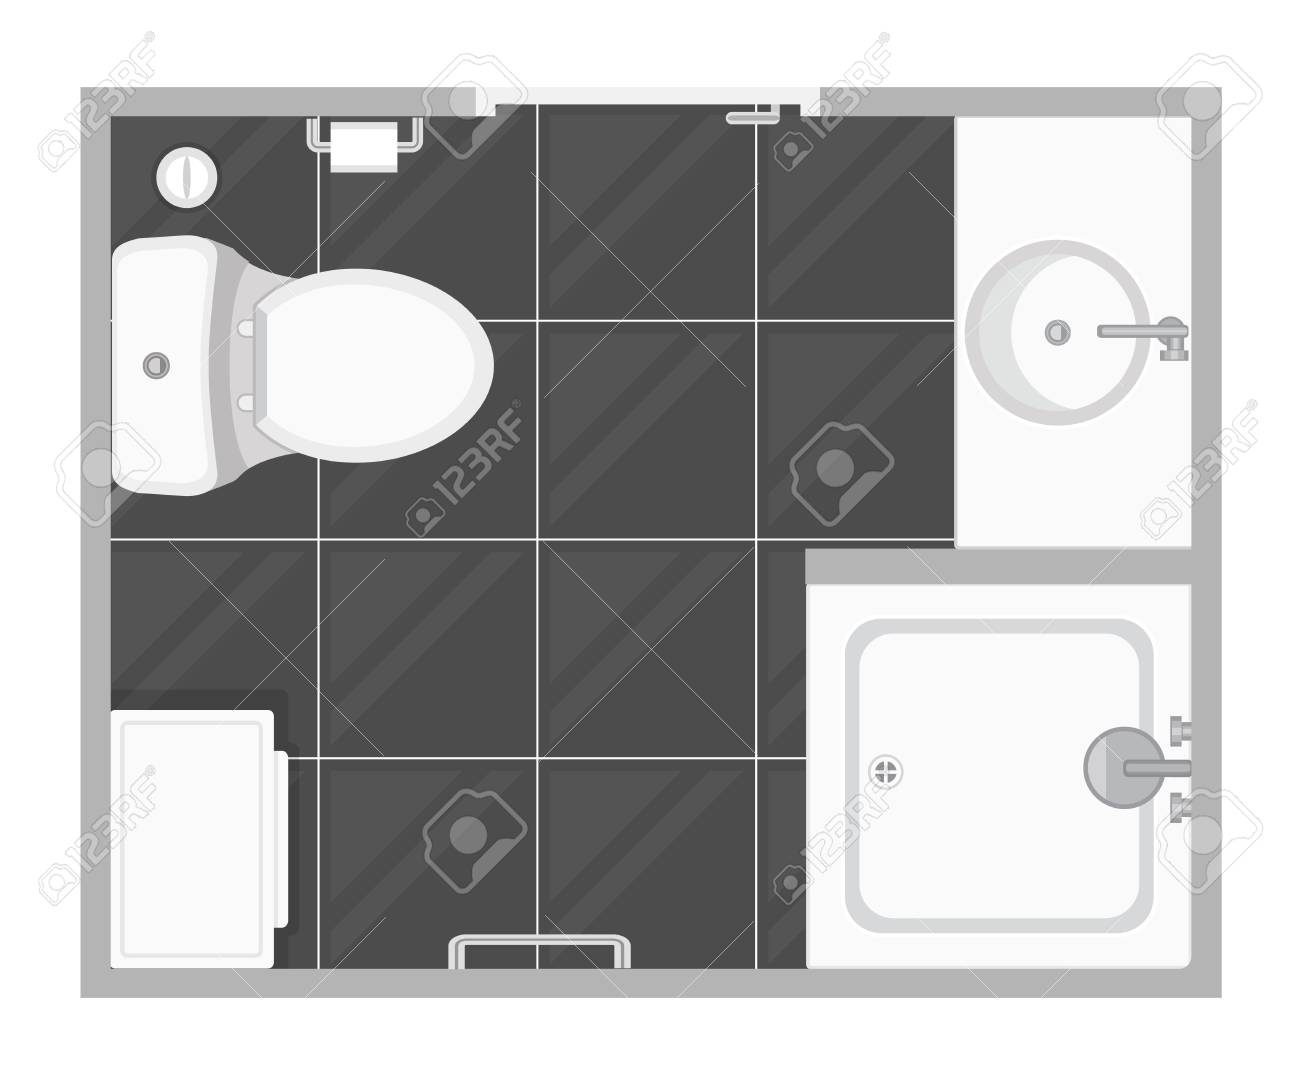 Bathroom Interior Top View Vector Illustration Floor Plan Of